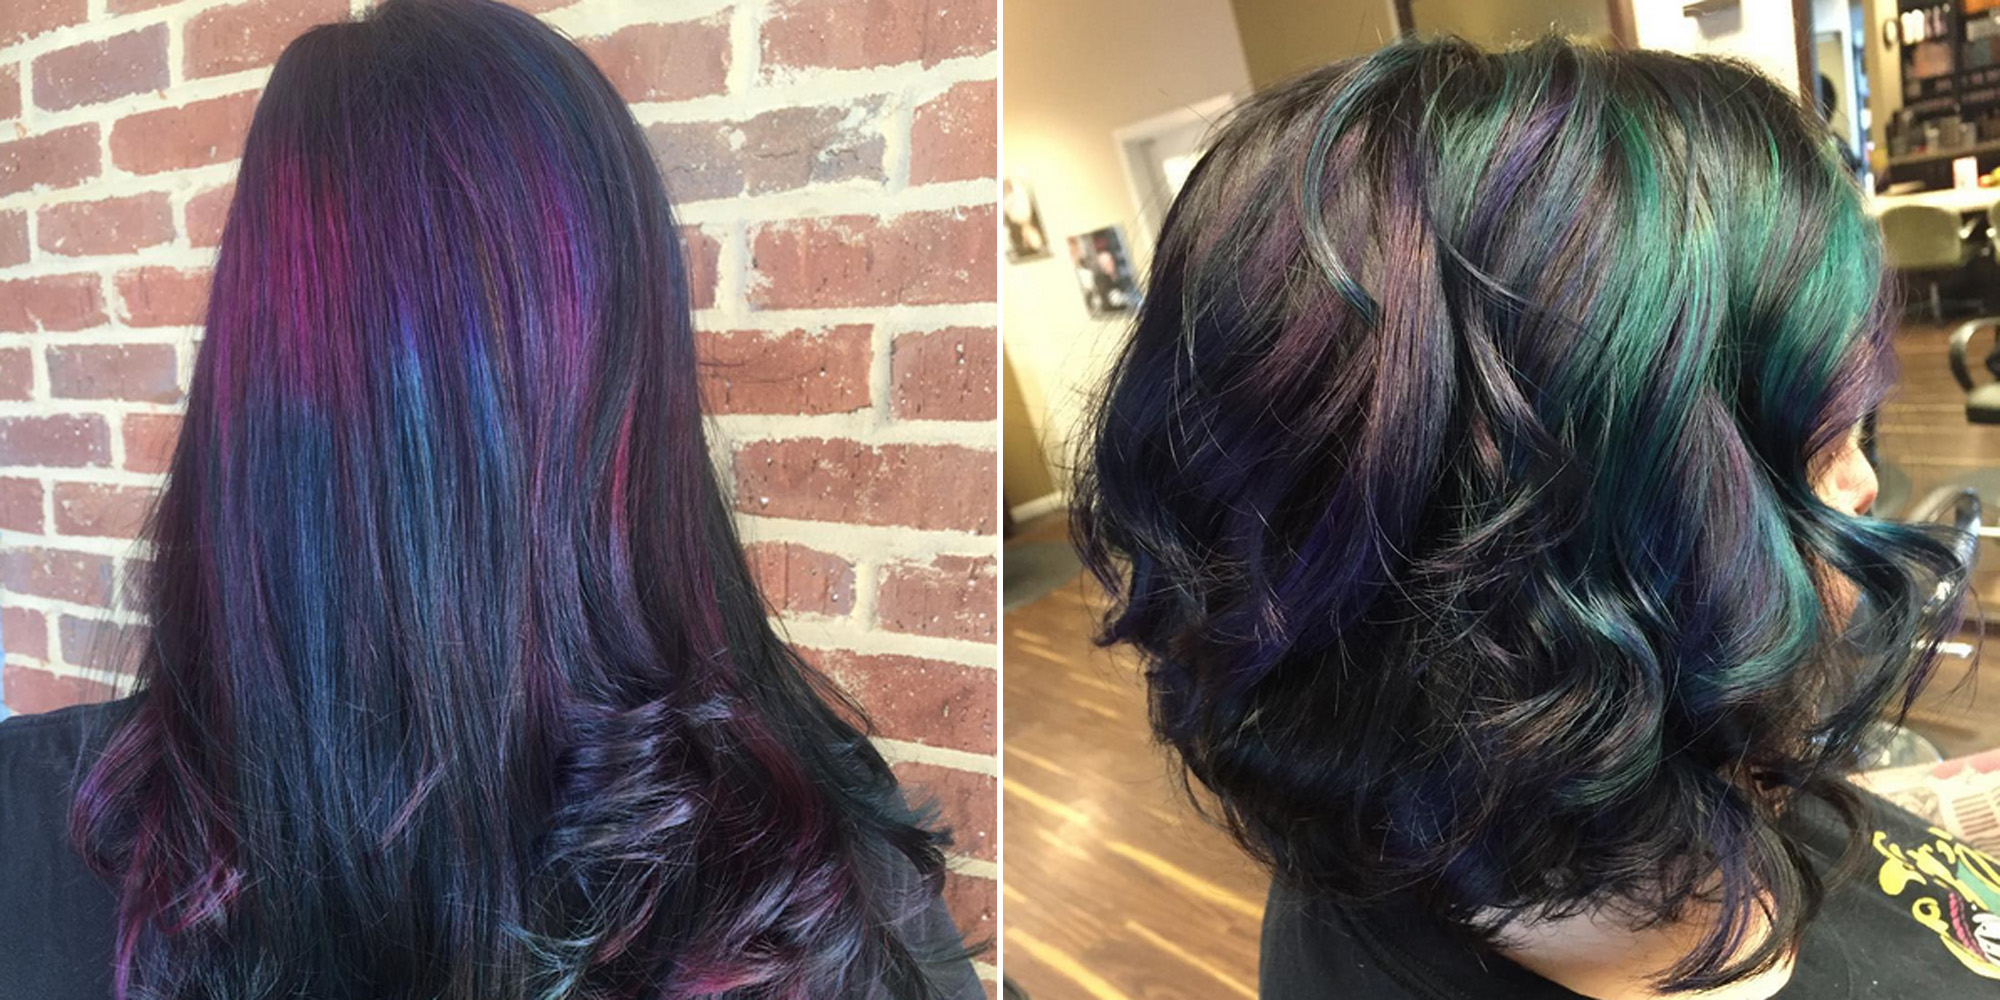 hair colour styles slick hair color trend 2015 hair dye trends 6732 | 1444254208 oil slick hair